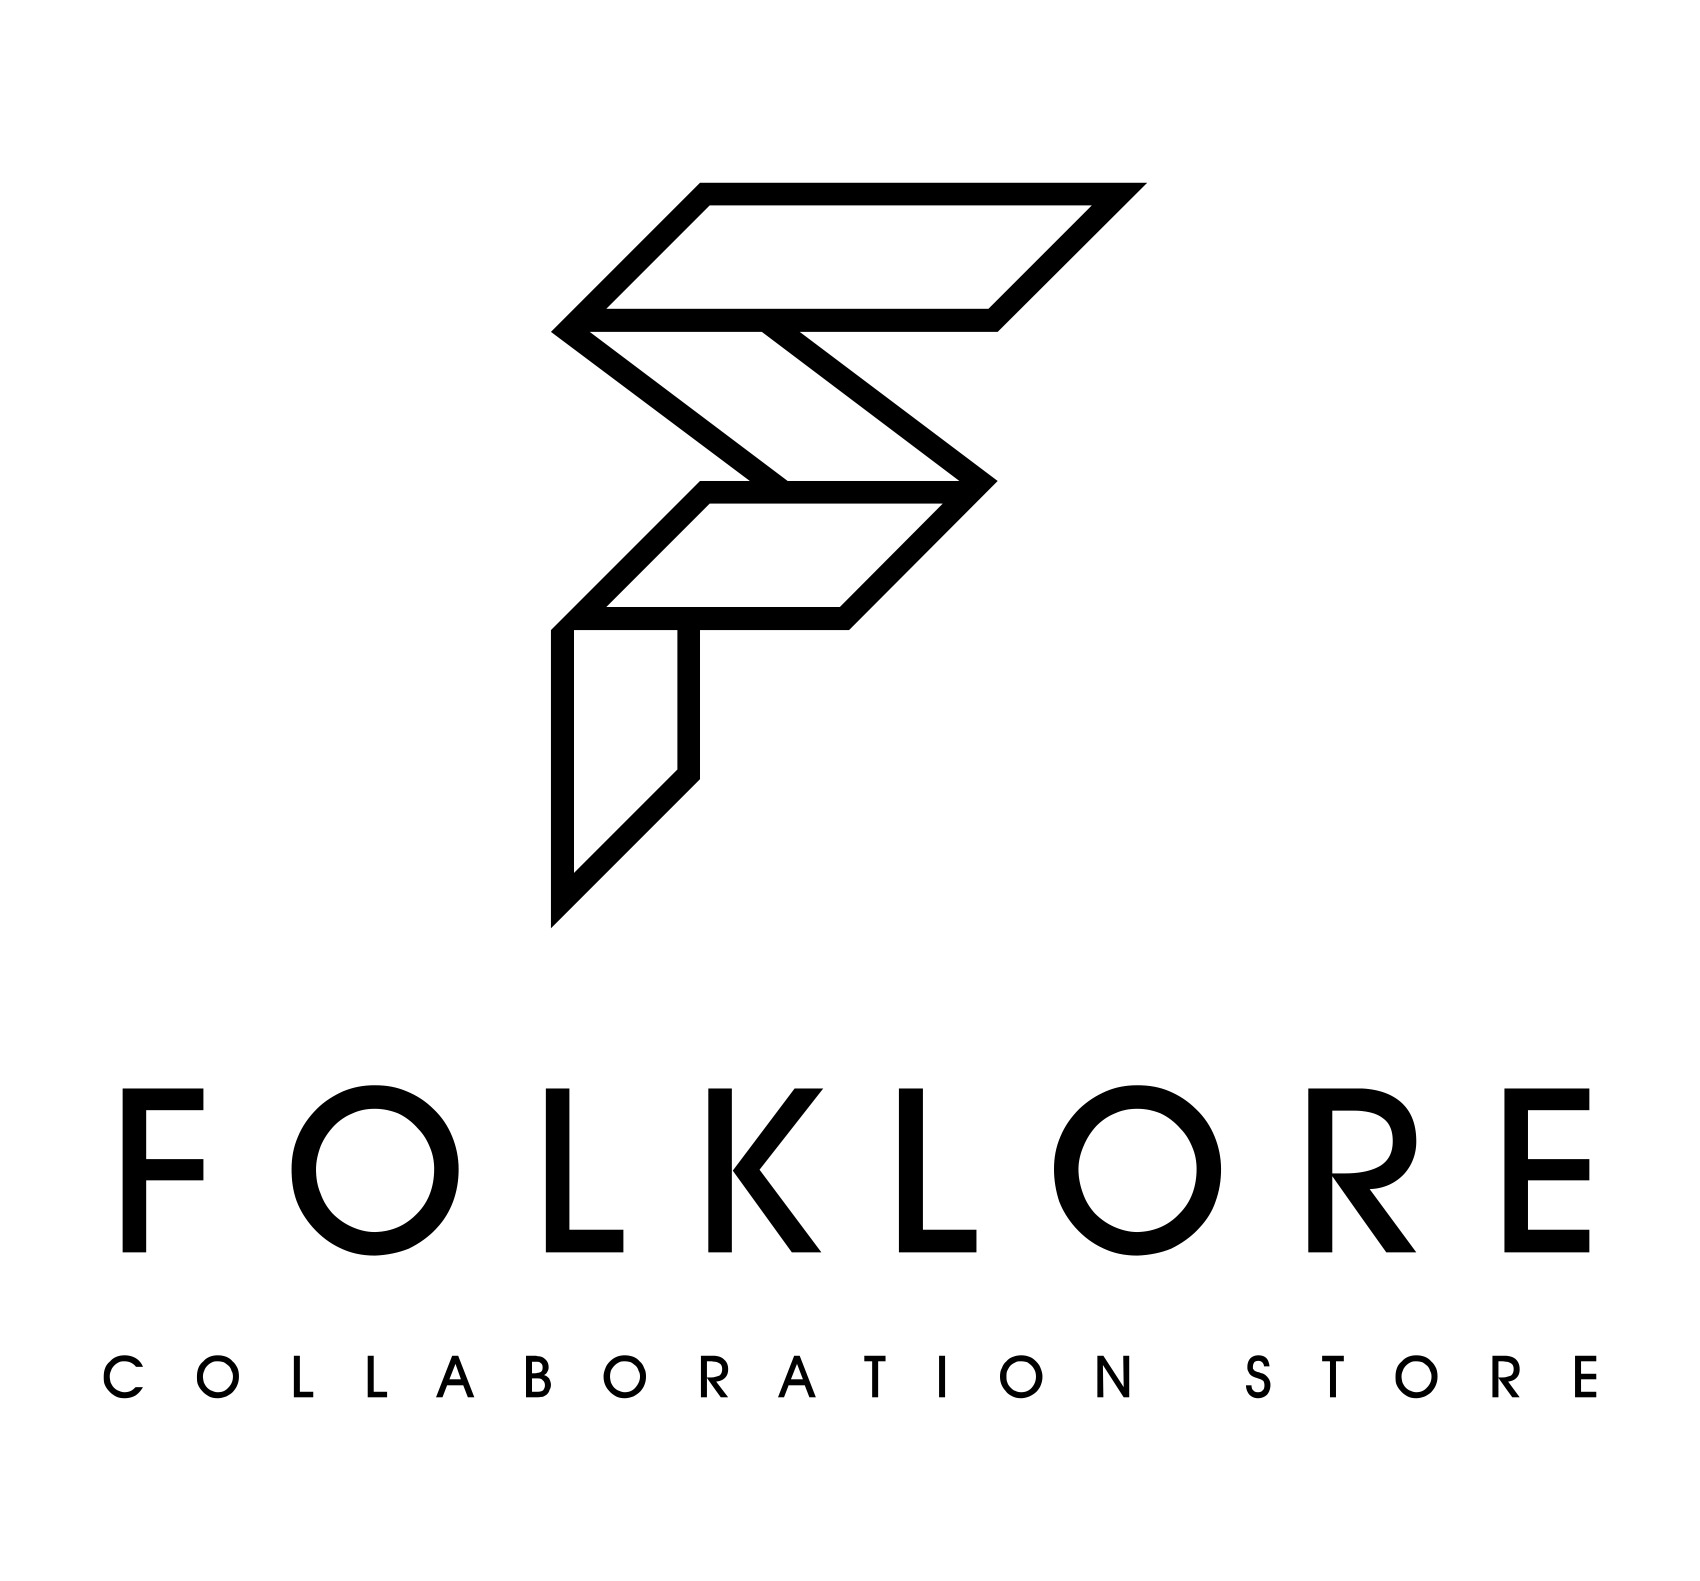 Folklore Collaboration Store